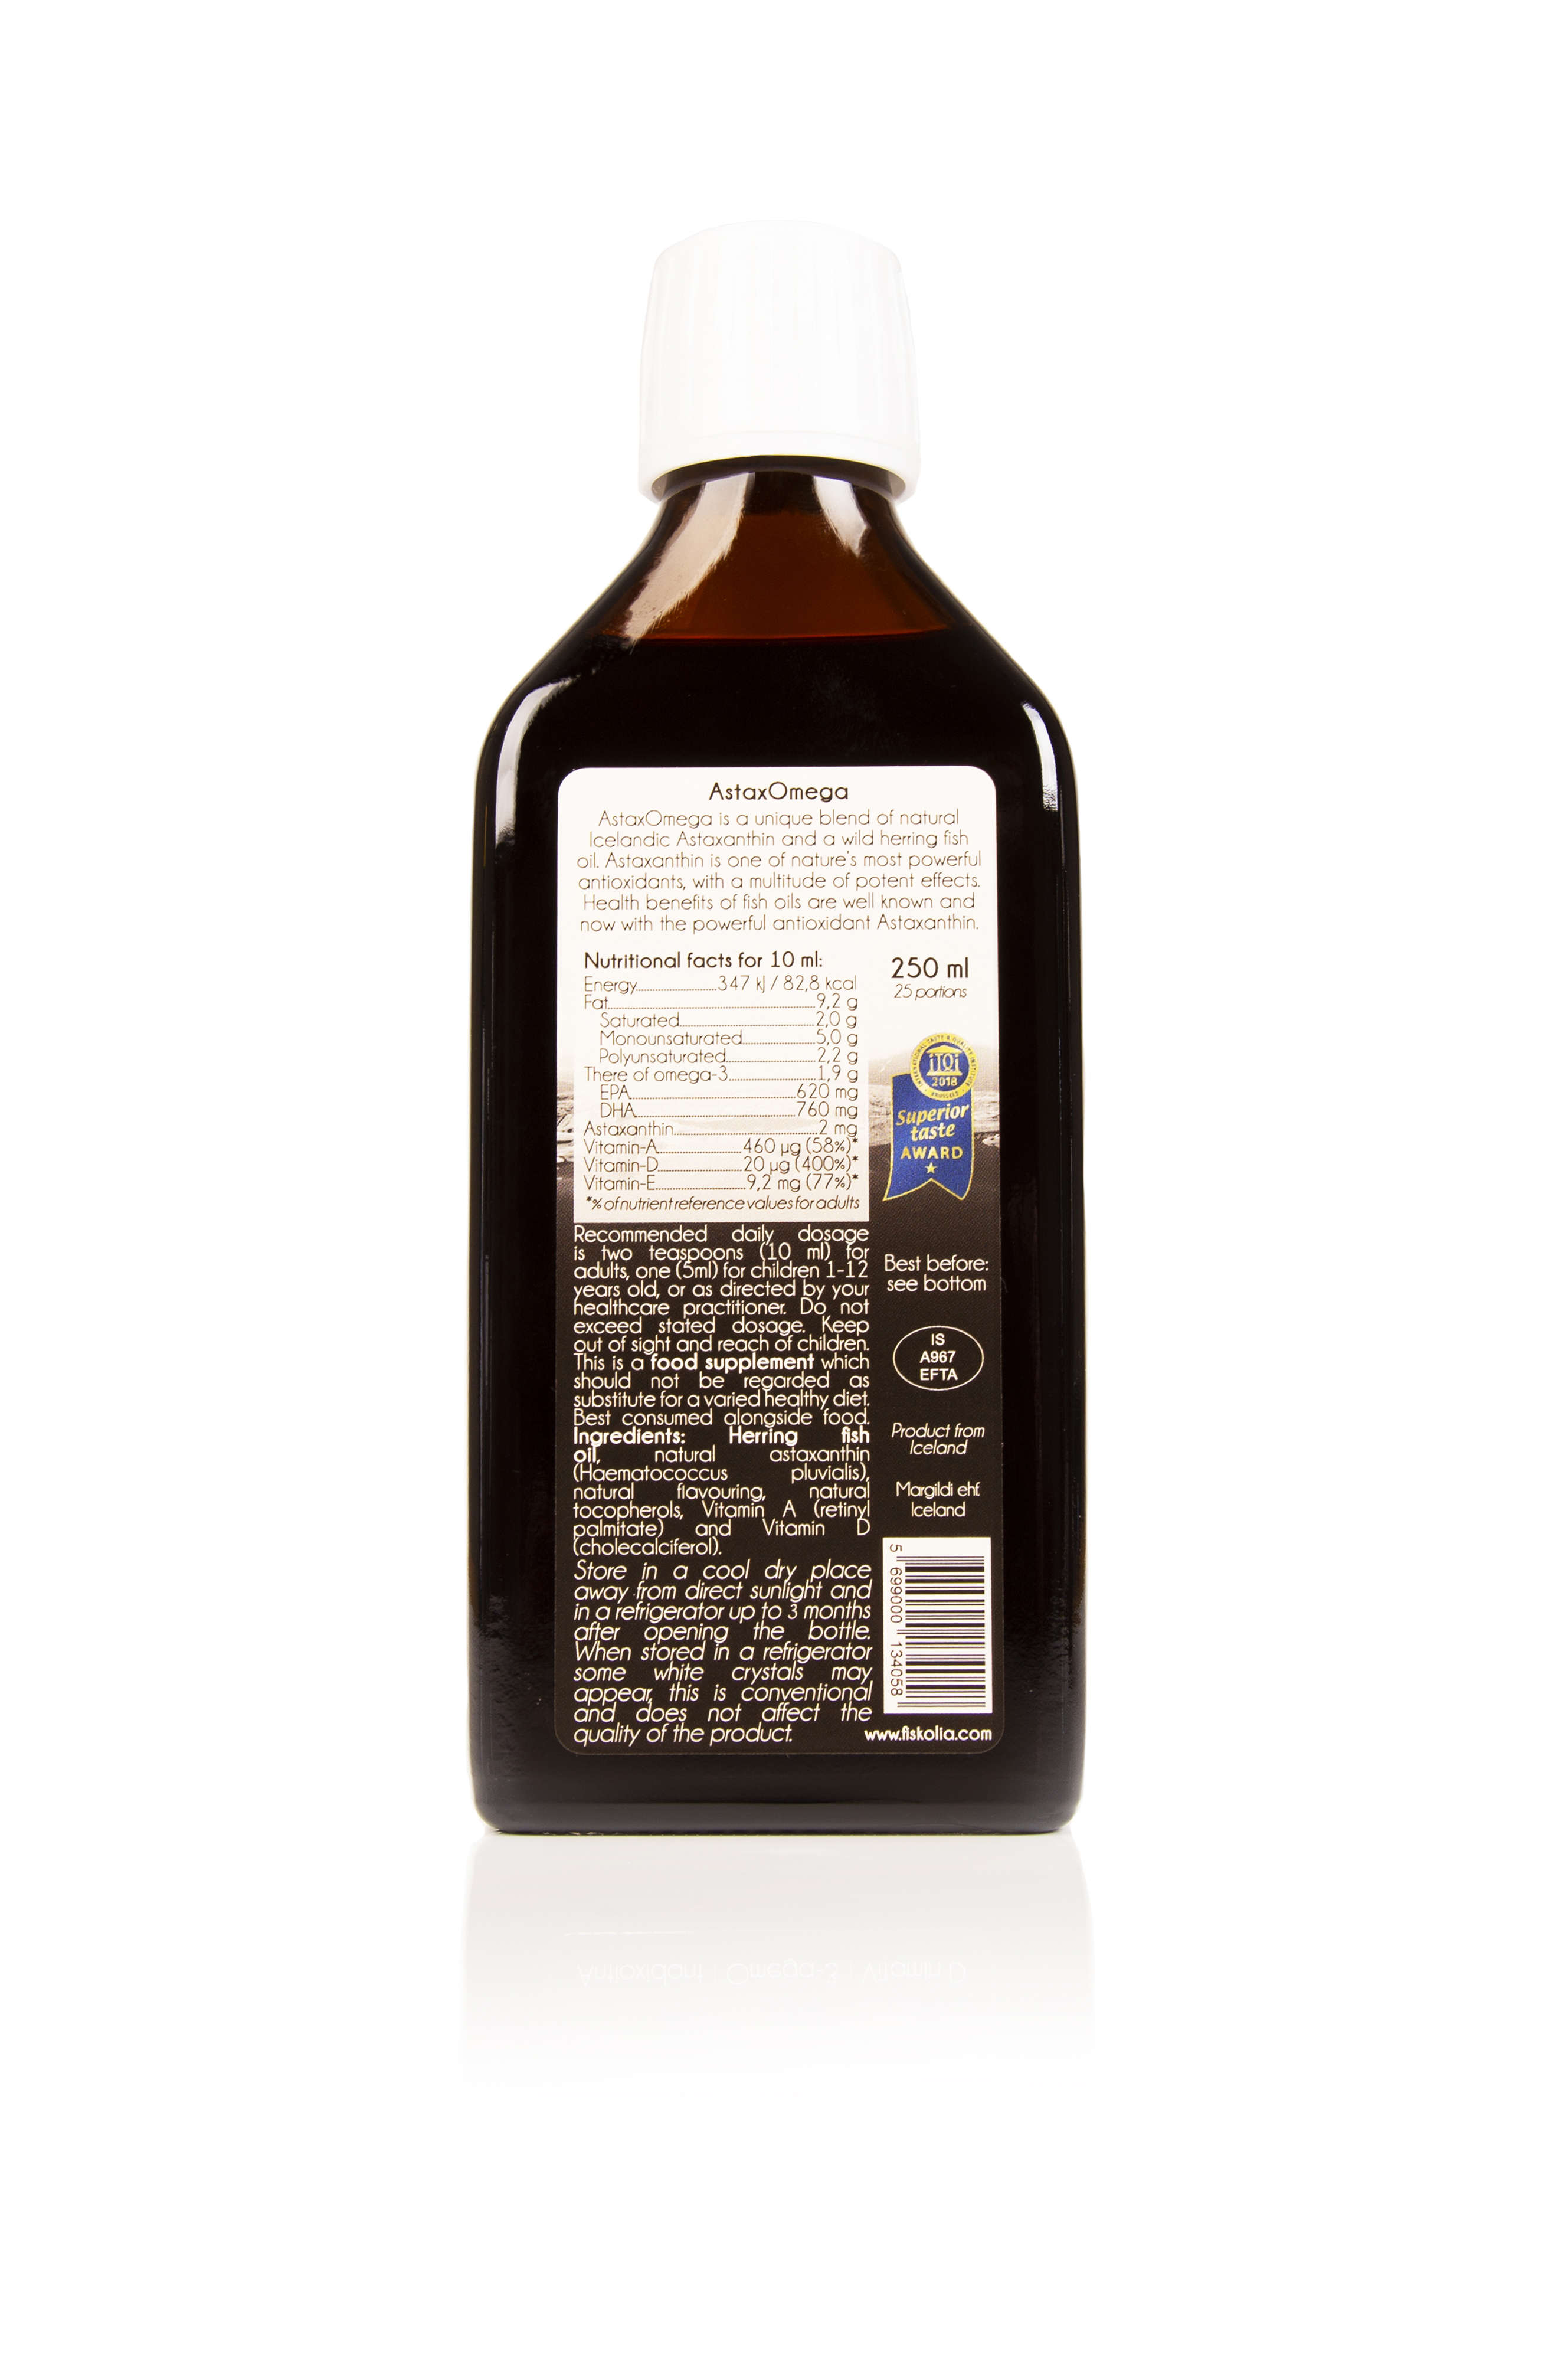 Astaxomega with Antioxidant 250ml (Currently Unavailable)